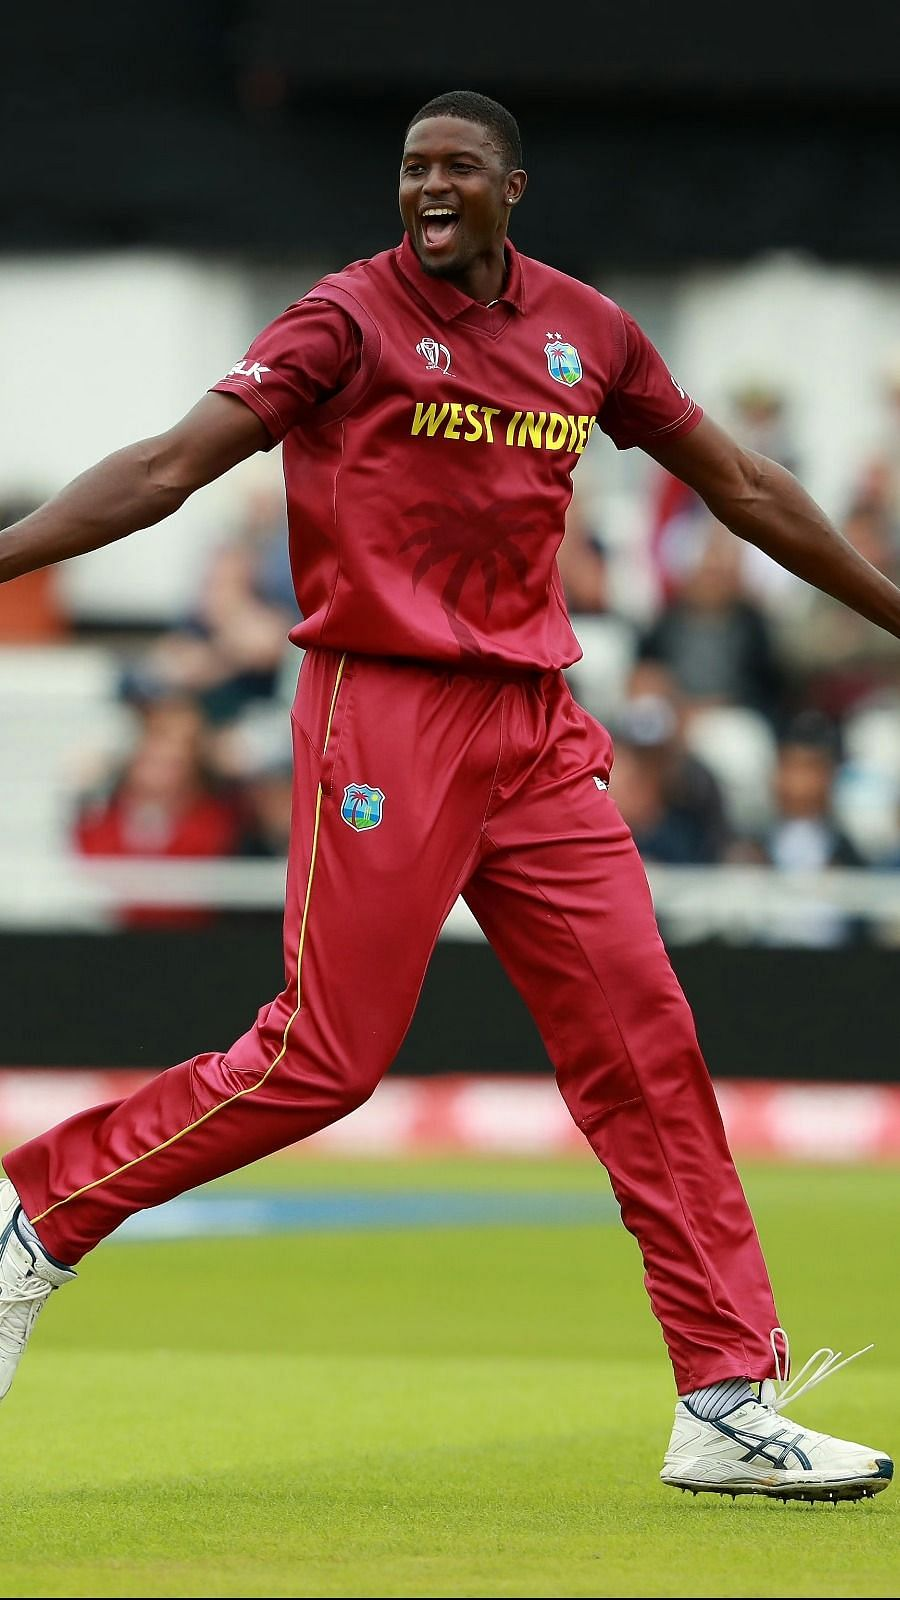 IPL 2020: 5 things you need to know about SRH's latest signing Jason Holder